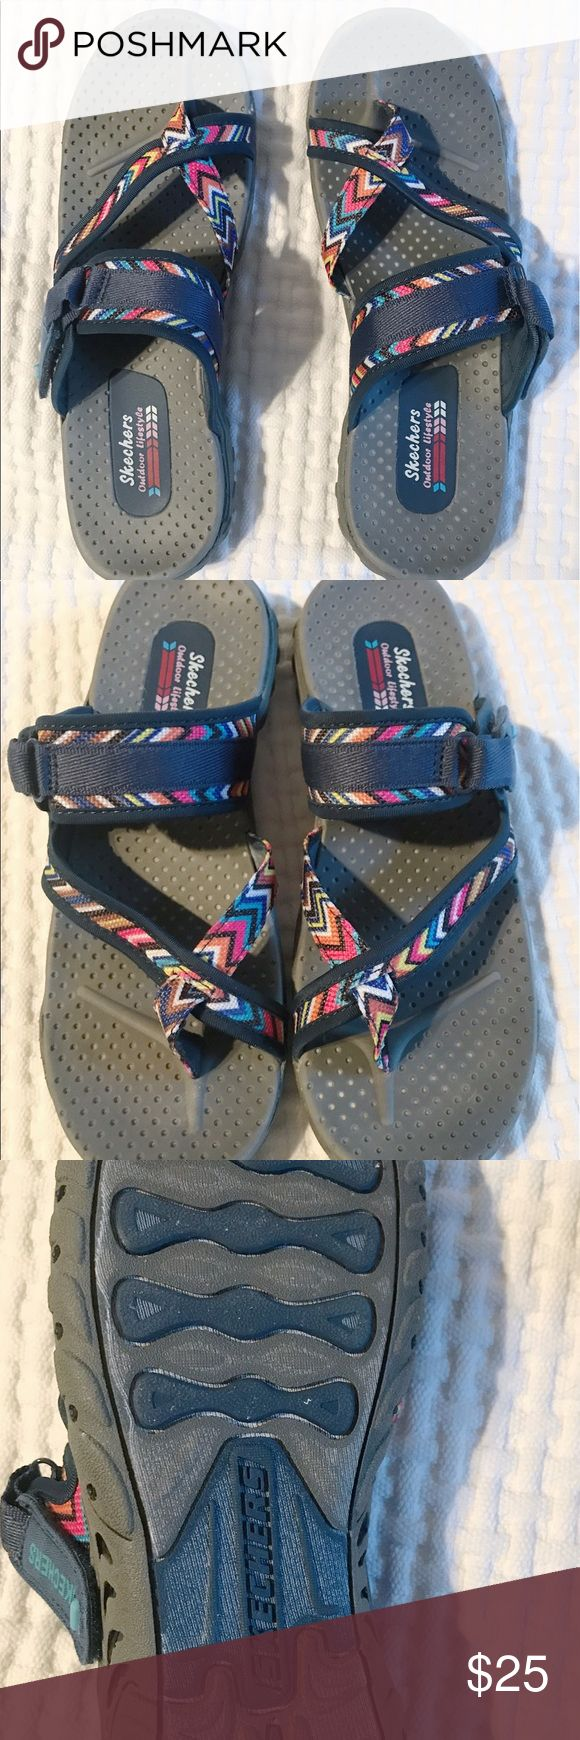 Skechers Go Walk Outdoor Living Sandals Brand new, never been worn! Skecher outdoor lifestyle sandals. Have amazing arch support and are made for walking! The most comfortable sandal known to man. Adjustable strap across the top of foot for changing tightness. Funky and stylish pattern! Skechers Shoes Sandals